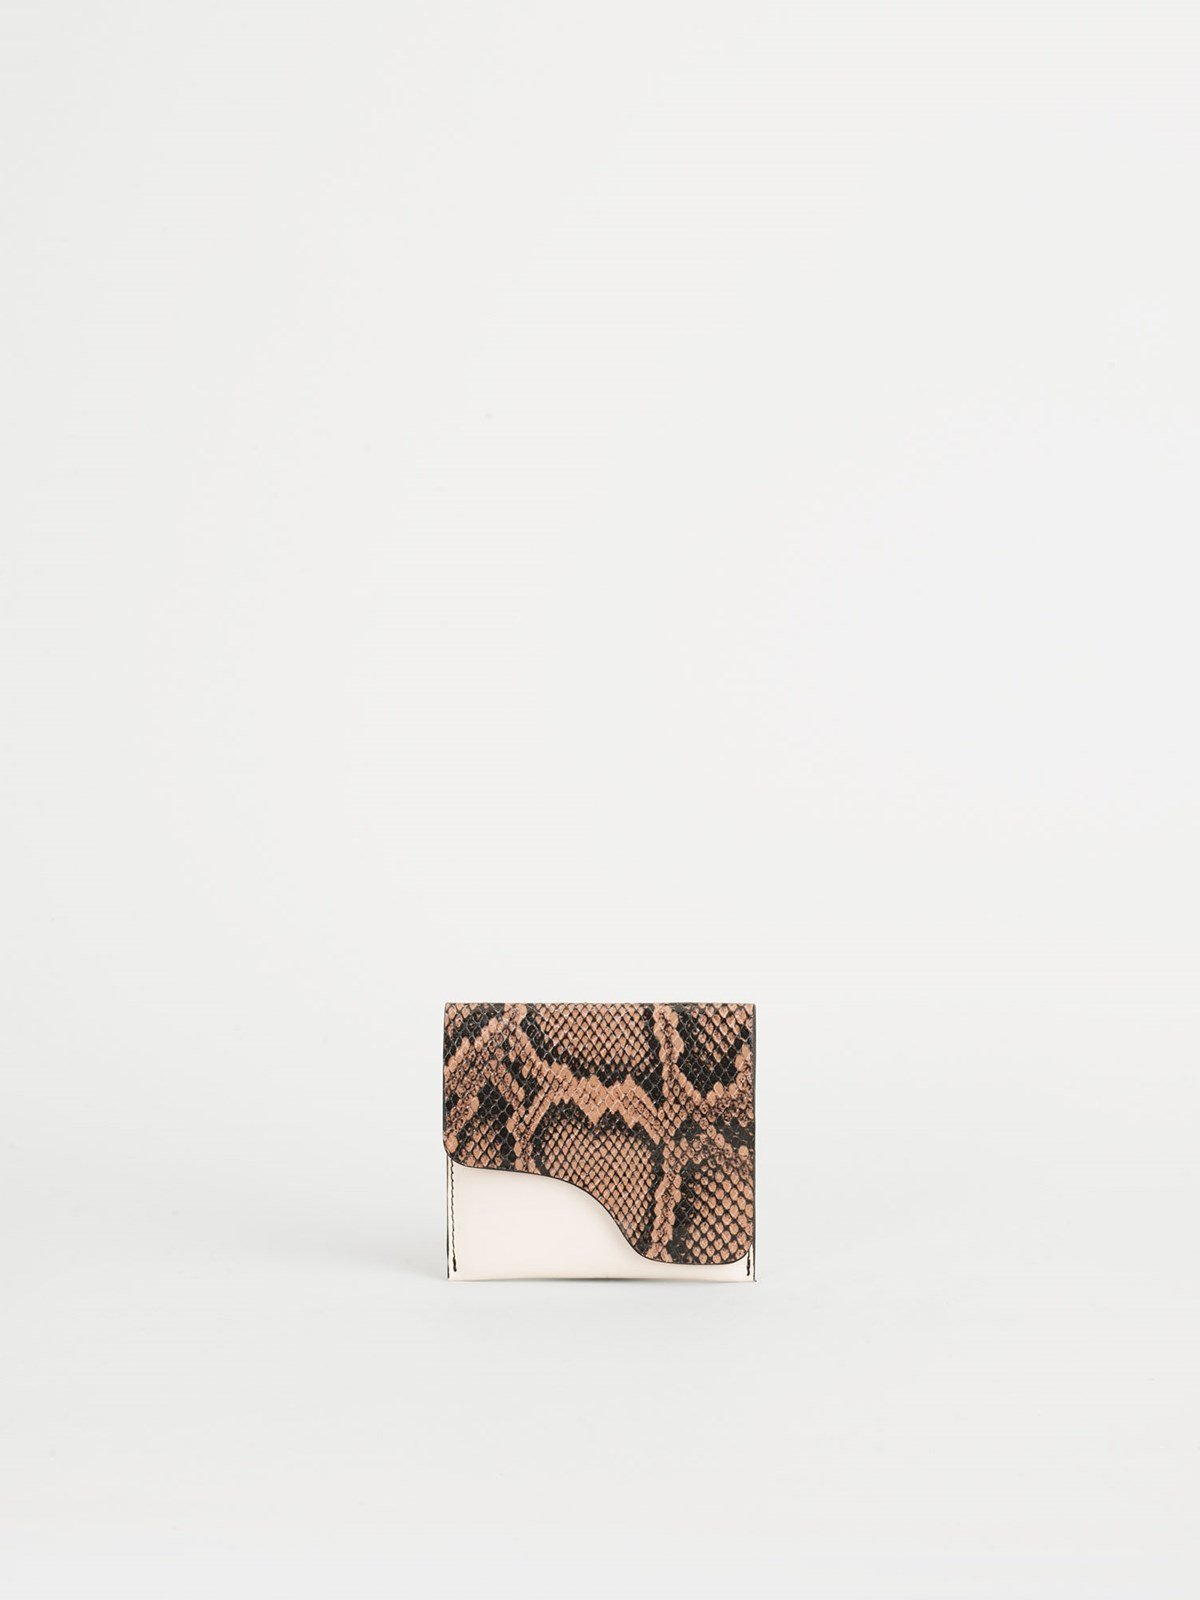 Olba Brown Card holder